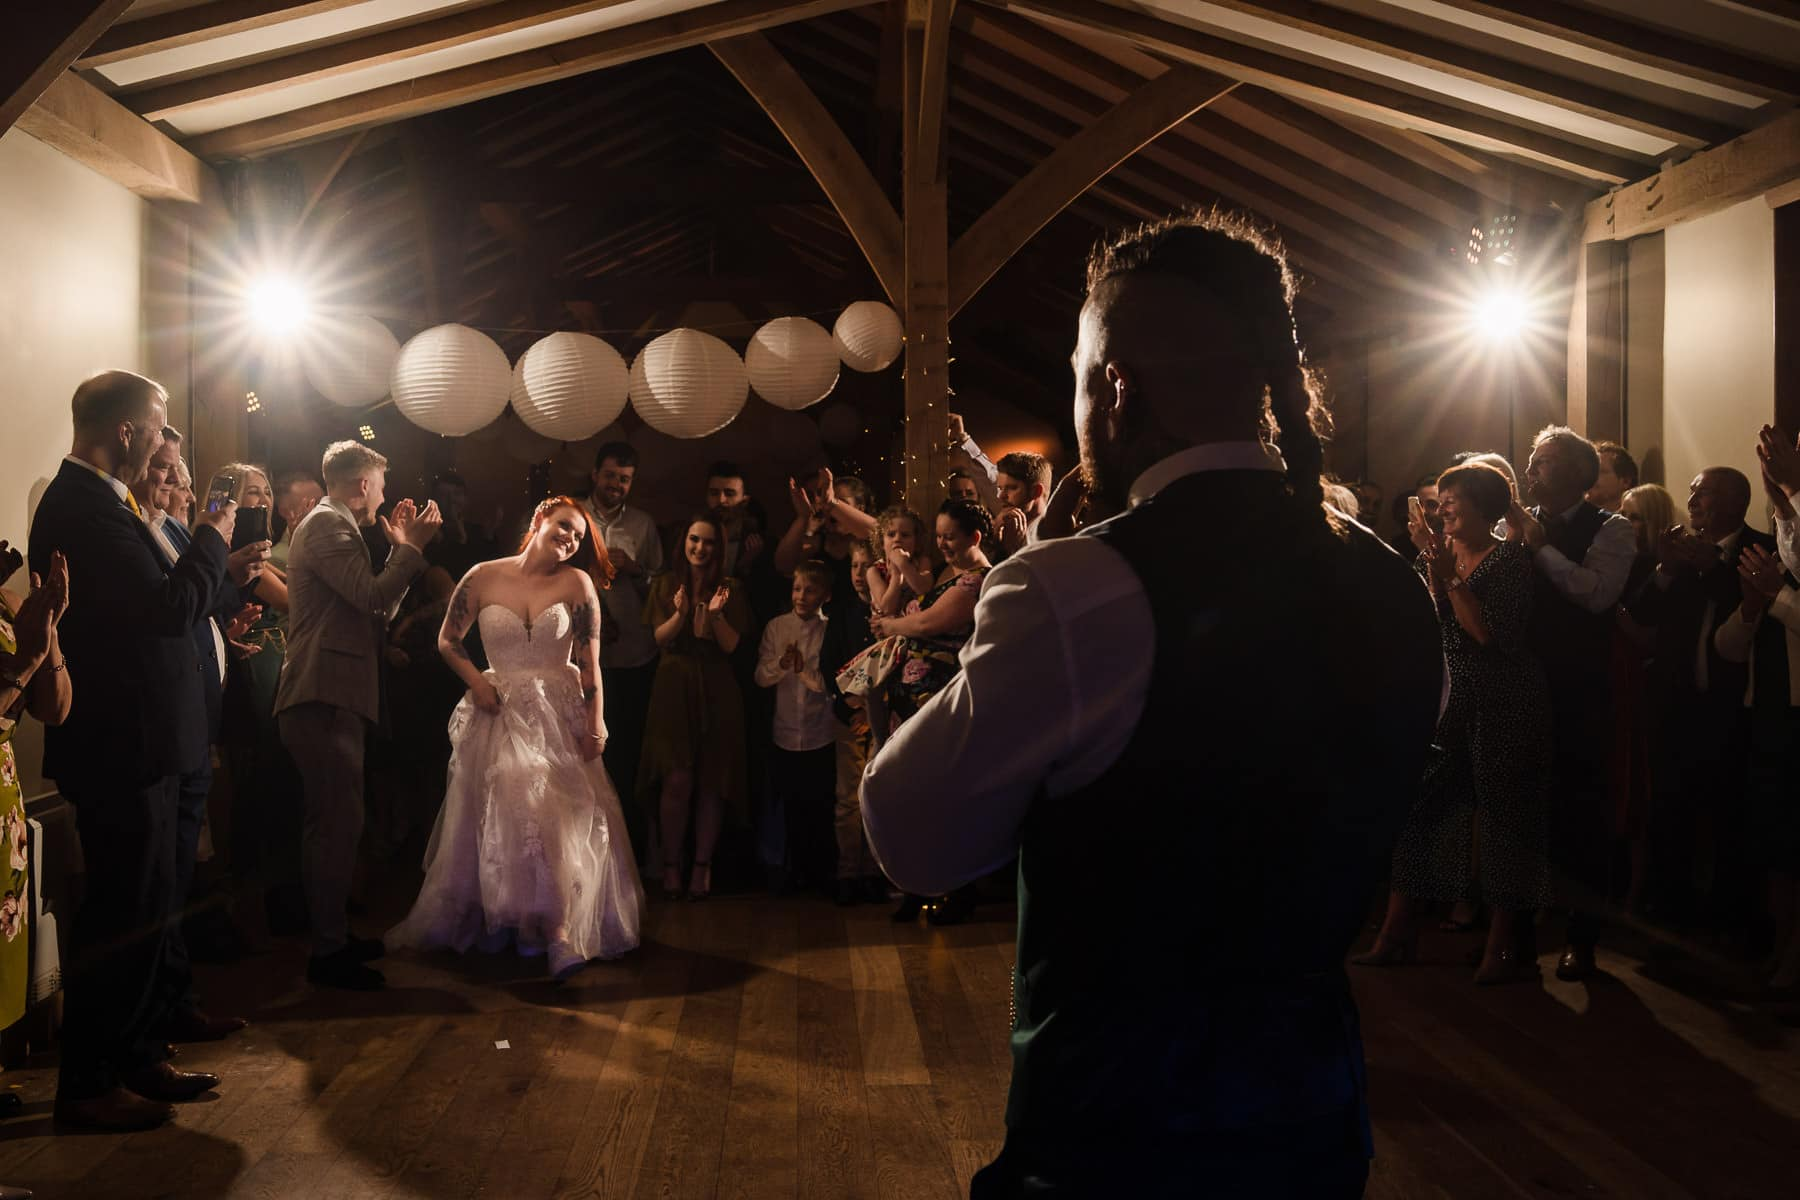 Mark Tolliss at Dodford Manor, announcing the bride on to the dance floor